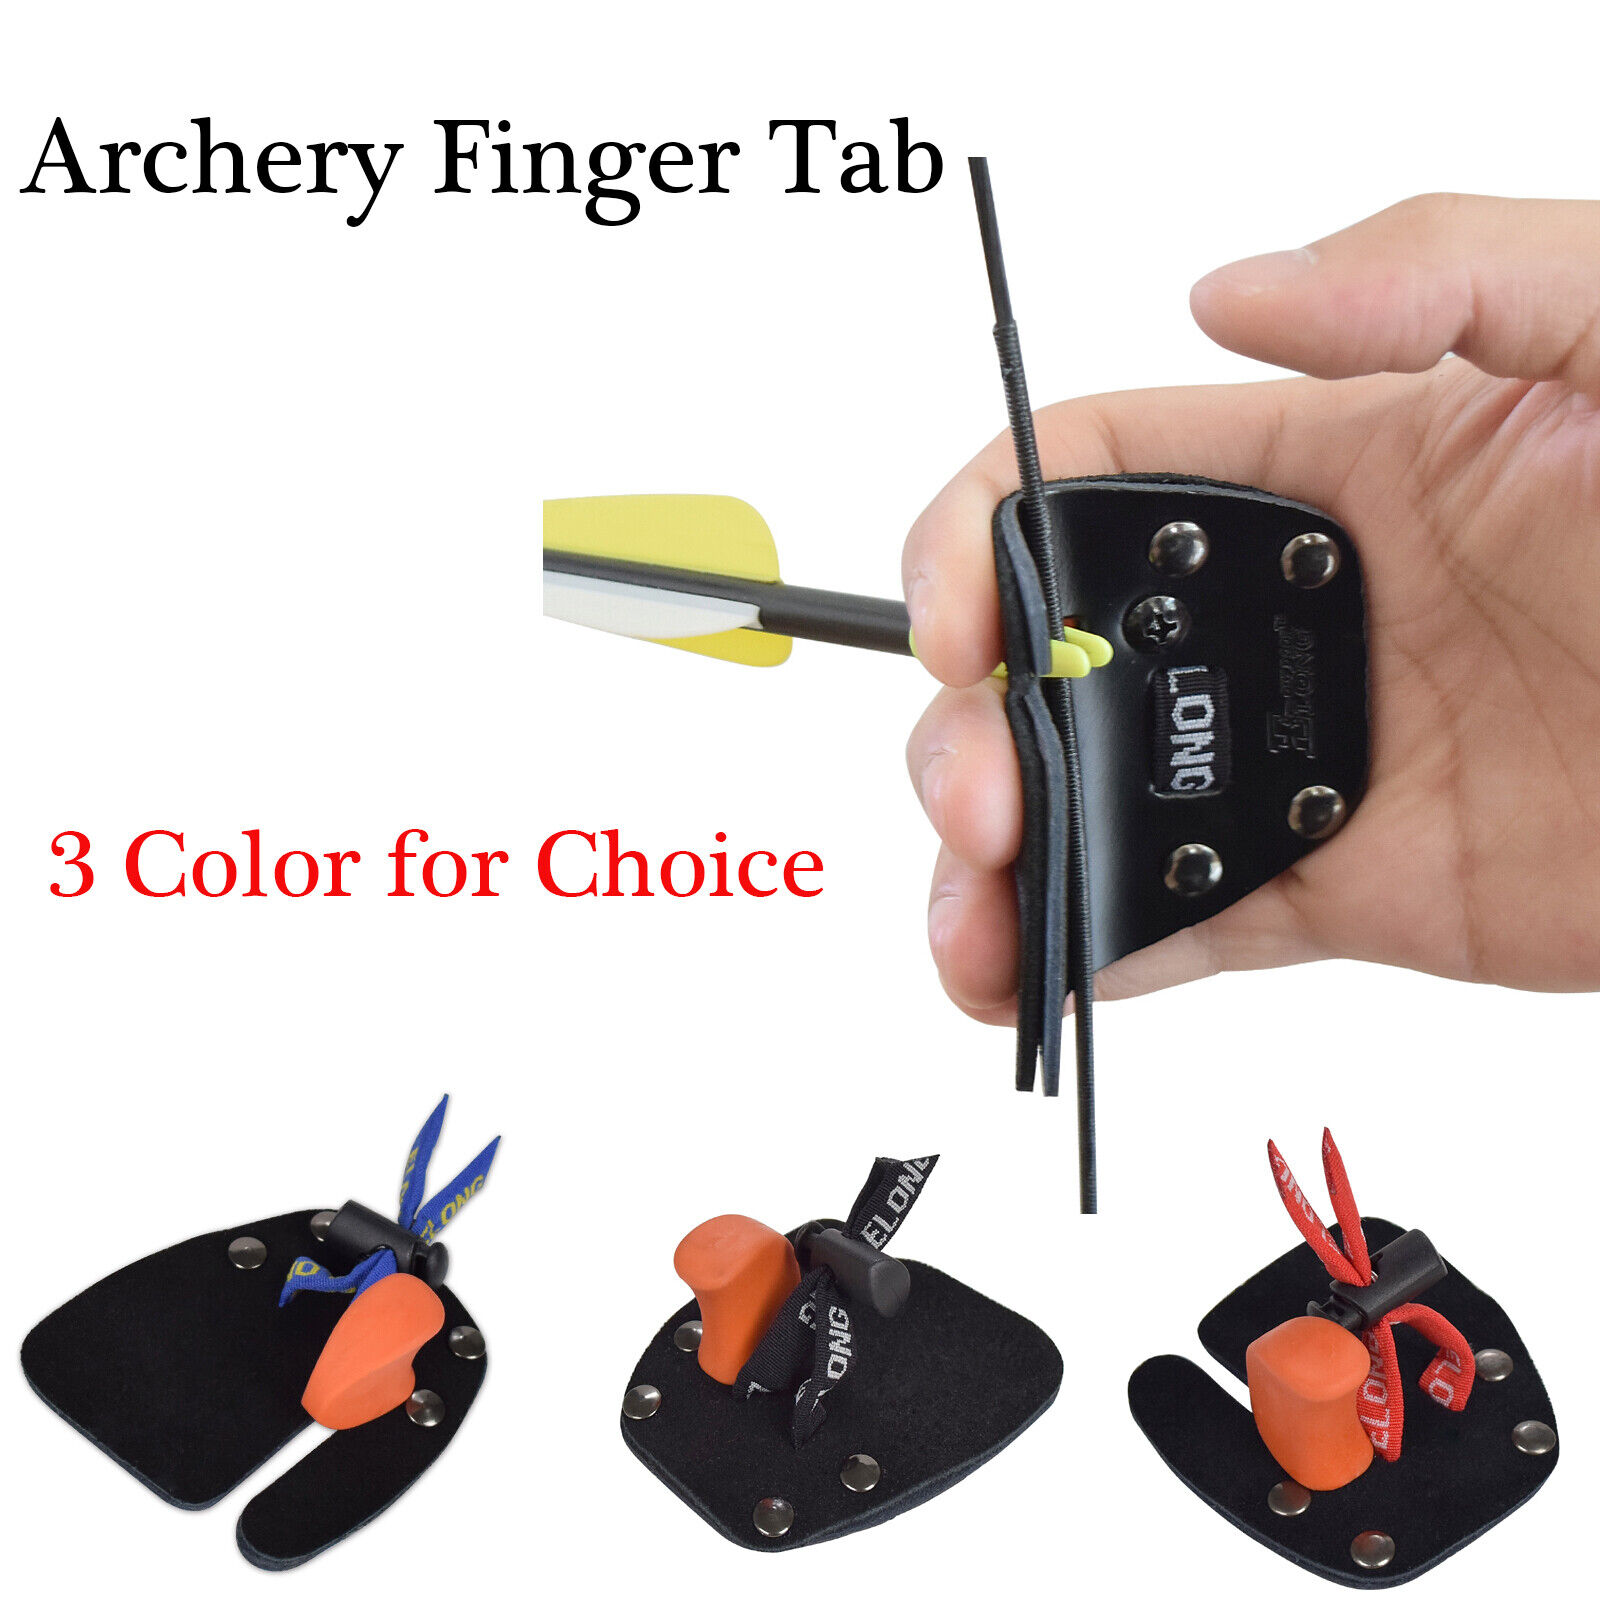 4 x Premium Archery Protective Gear Hunting Finger Protector 3 Under Tabs